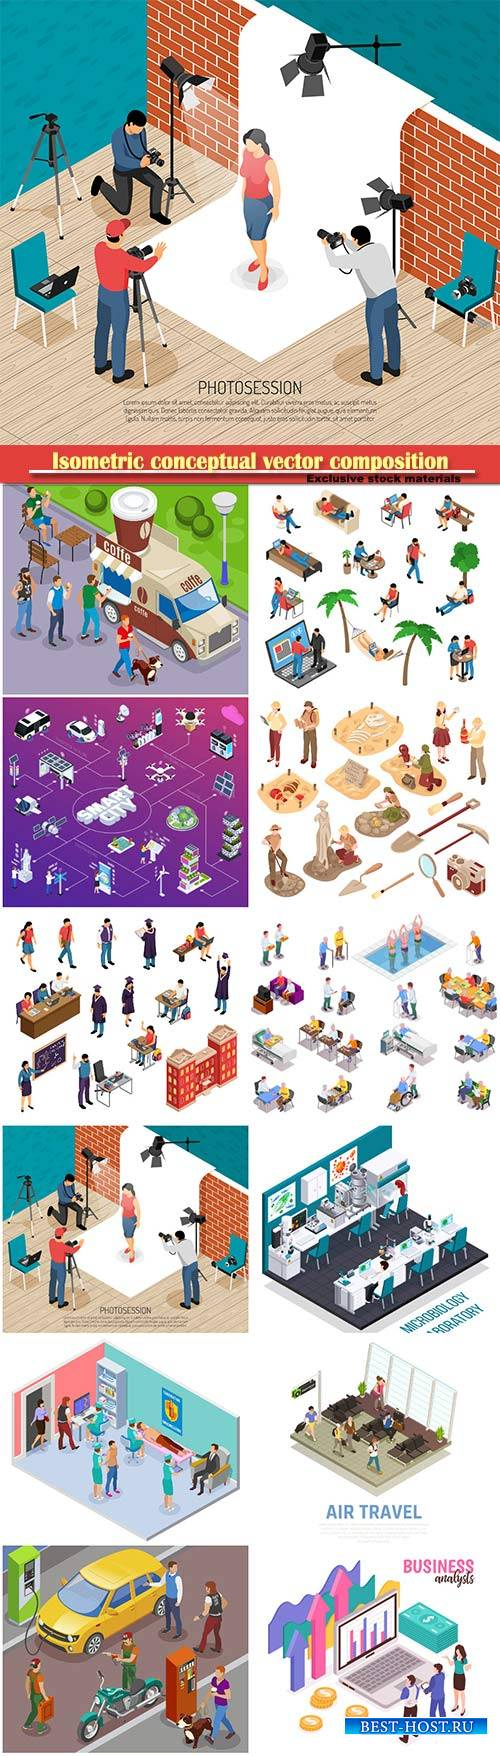 Isometric conceptual vector composition, infographics template # 70